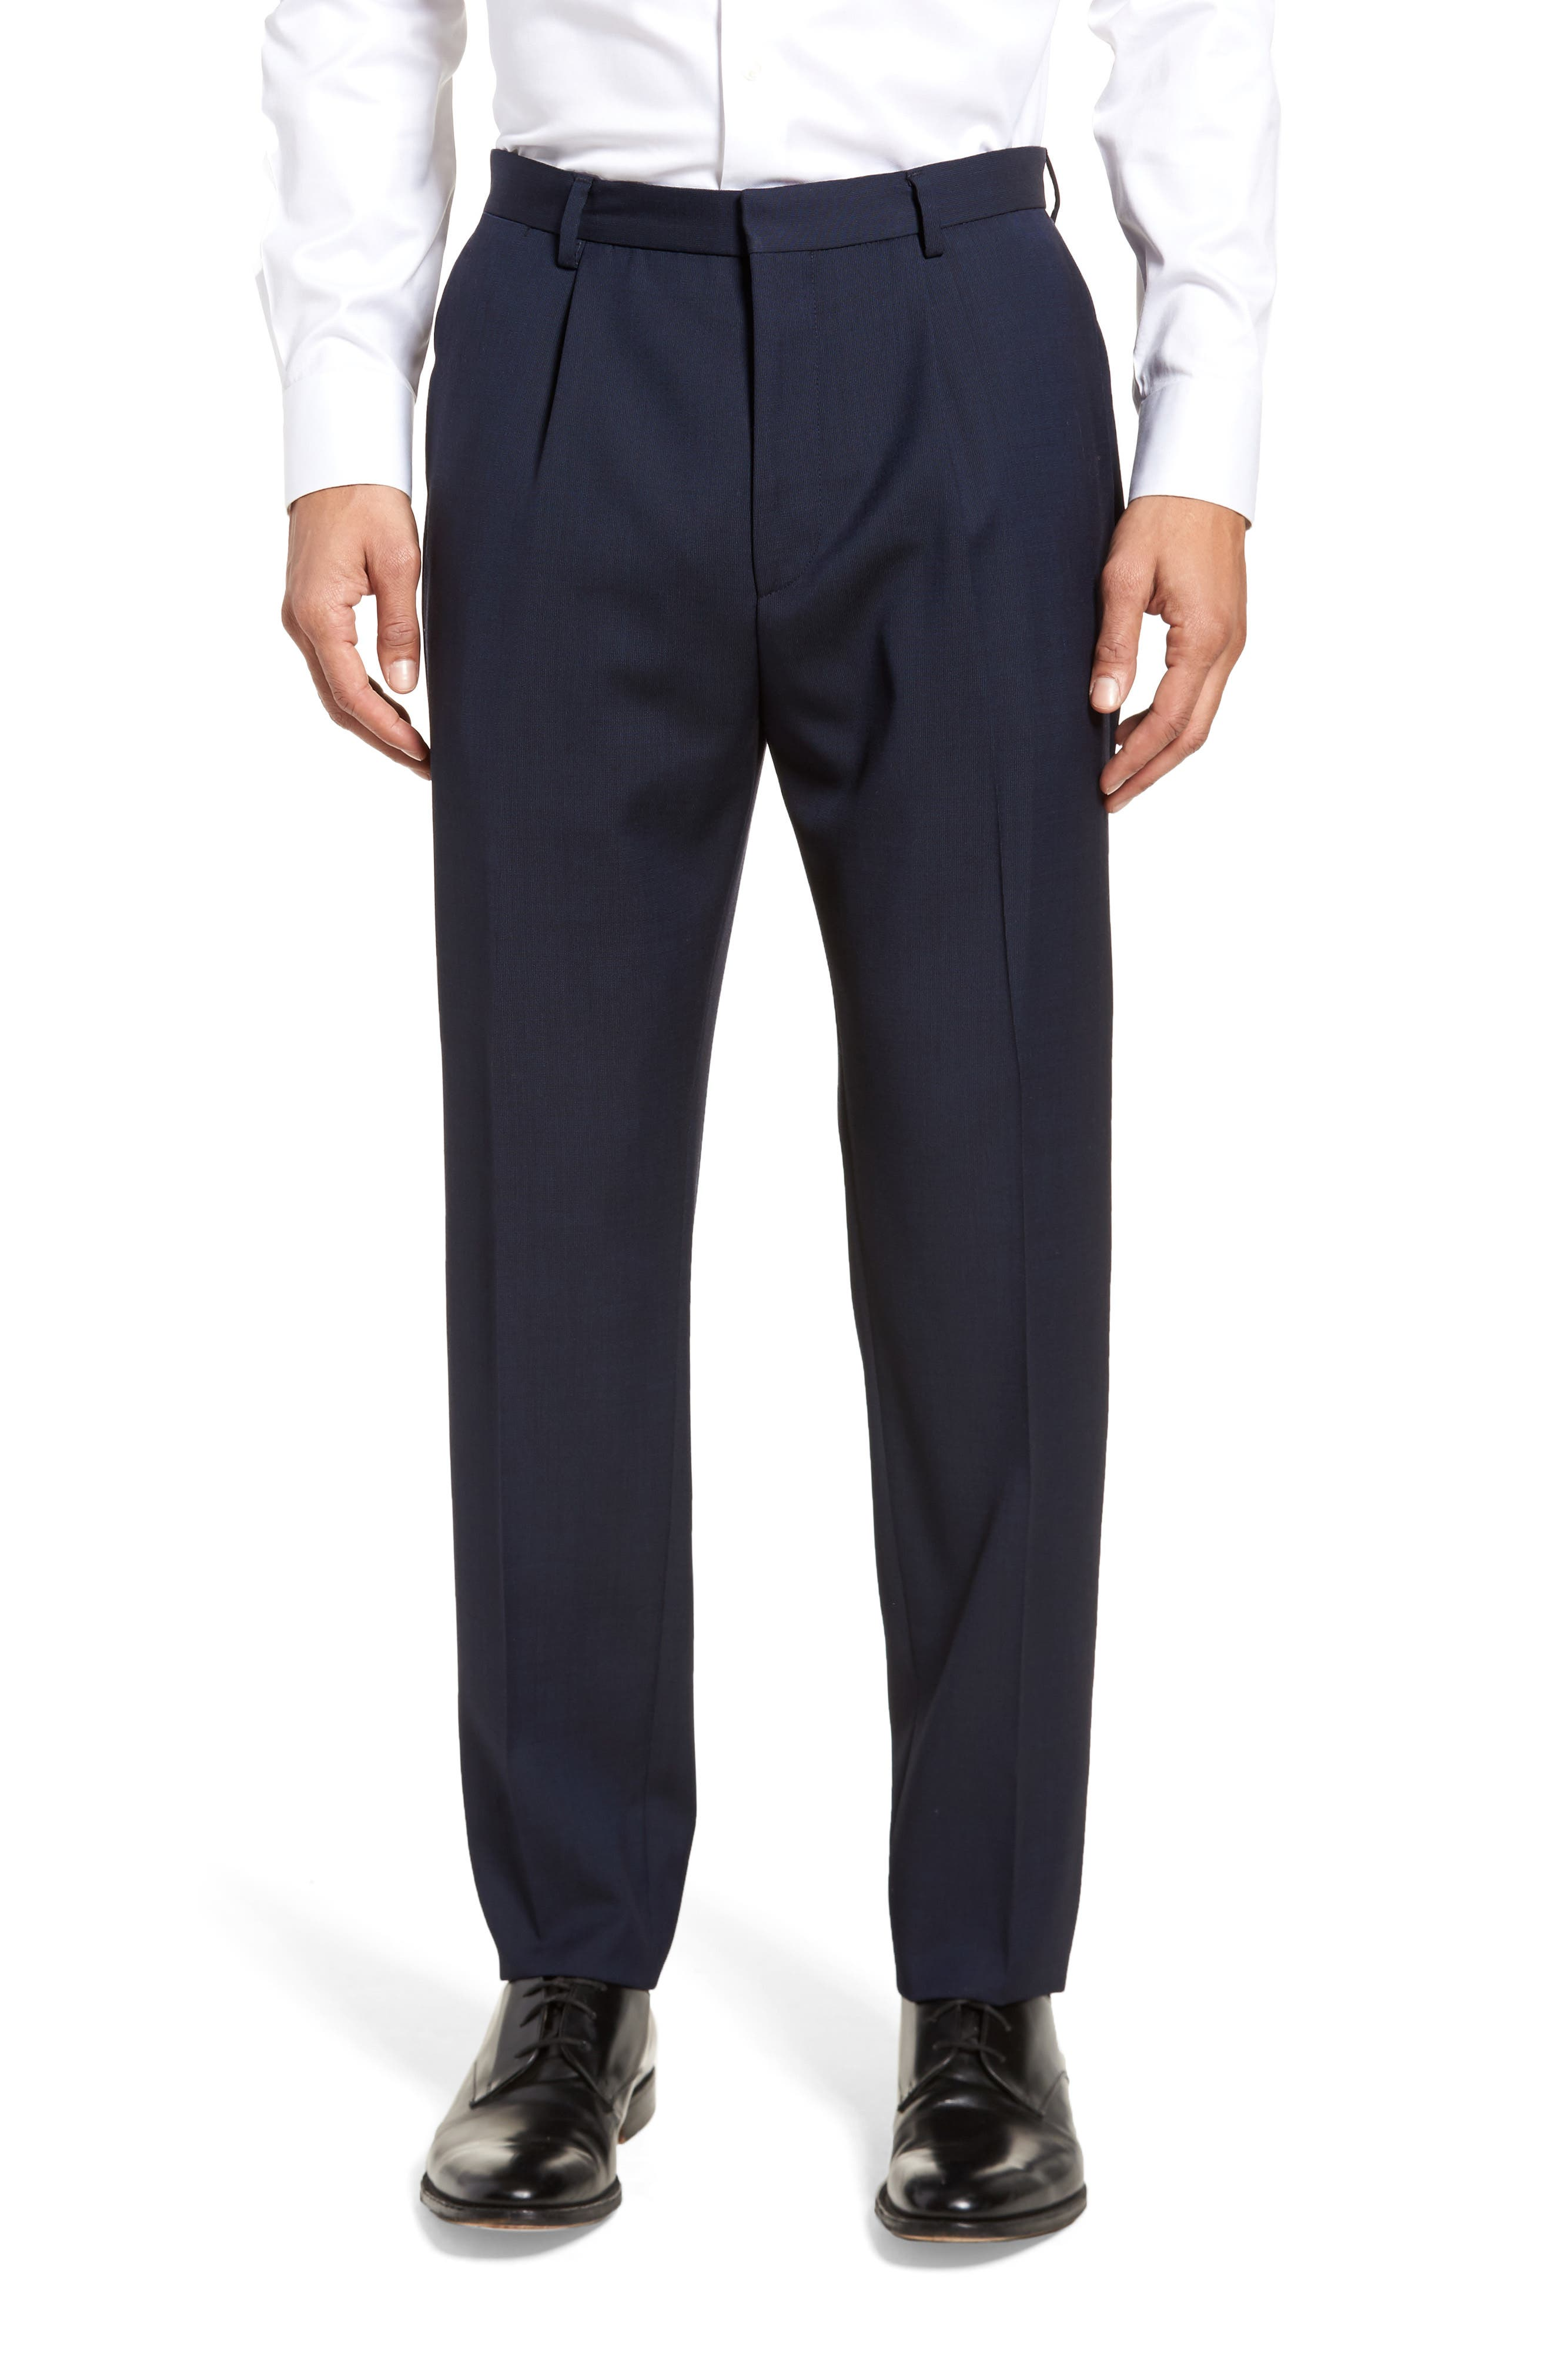 Nylen/Perry Trim Fit Solid Wool Suit,                             Alternate thumbnail 6, color,                             Navy